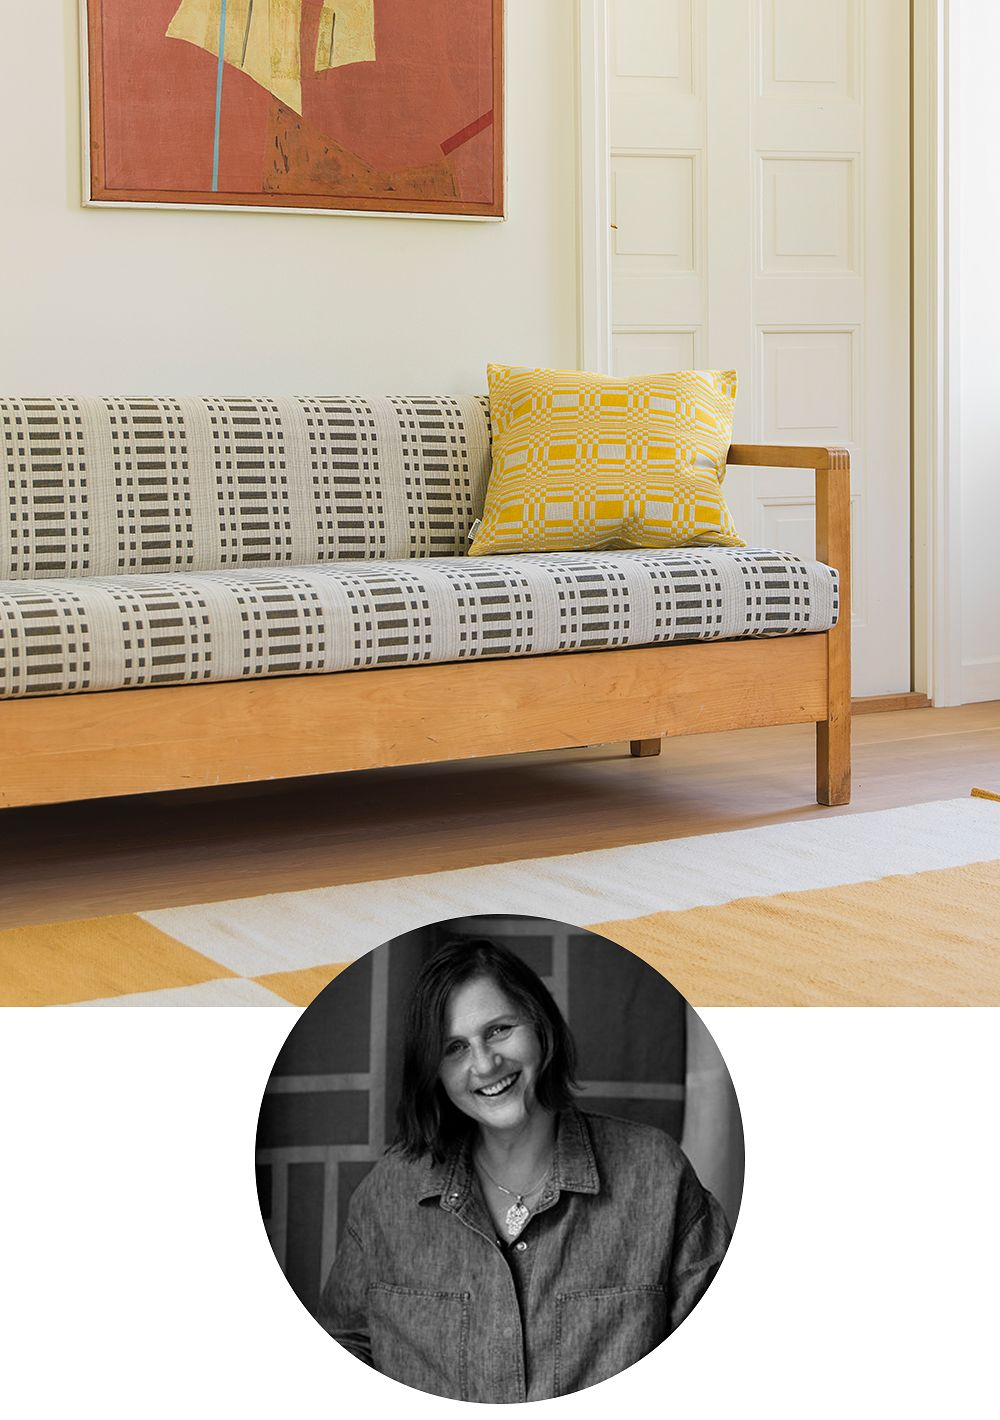 Designer Johanna Gullichsen featuring a couch upholstered in woven fabric designed by her.